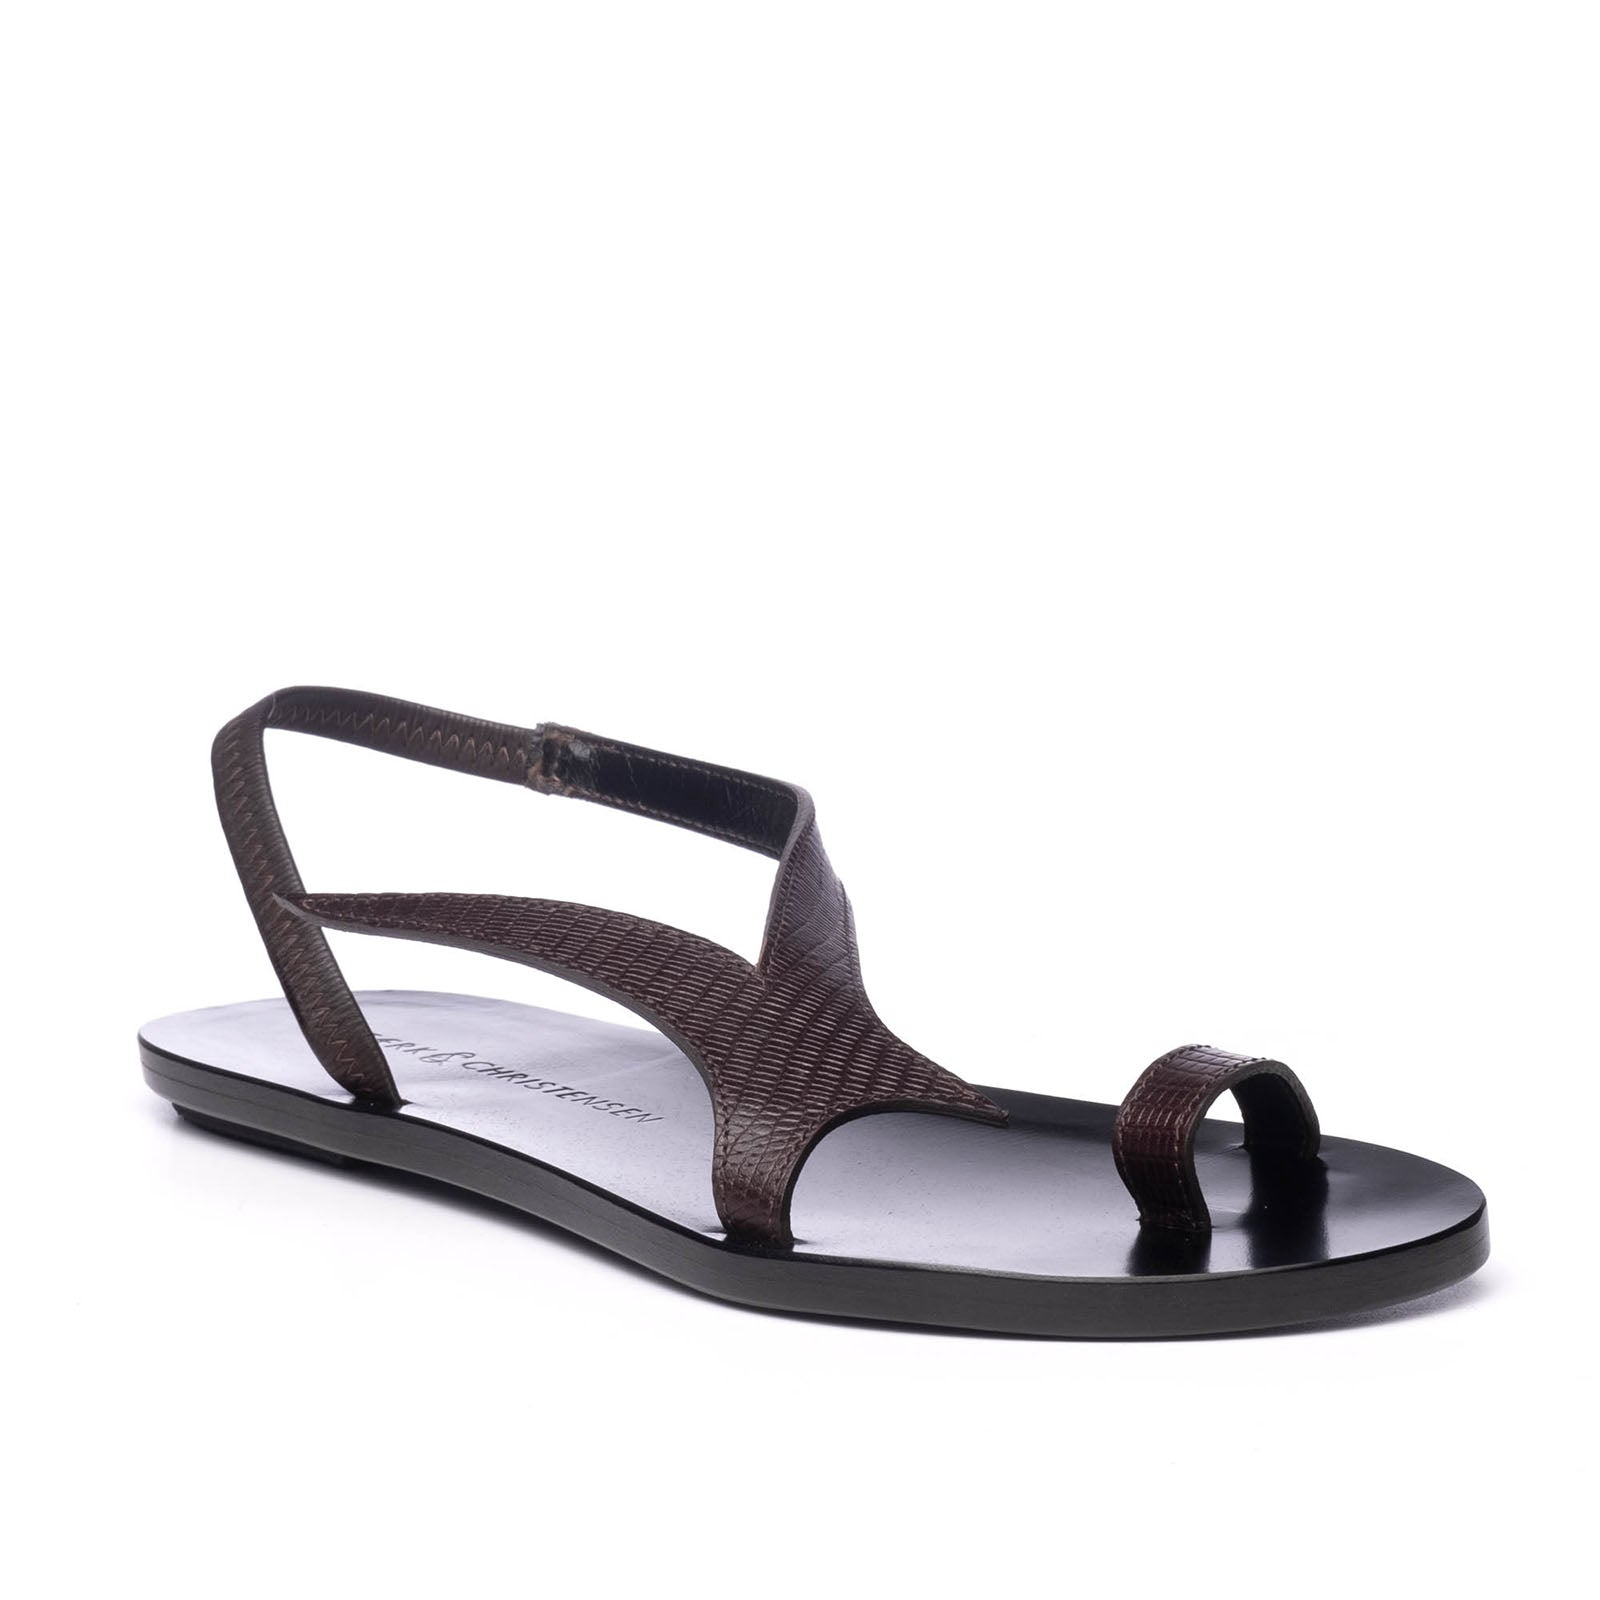 THE SWALLOW SANDAL | BROWN